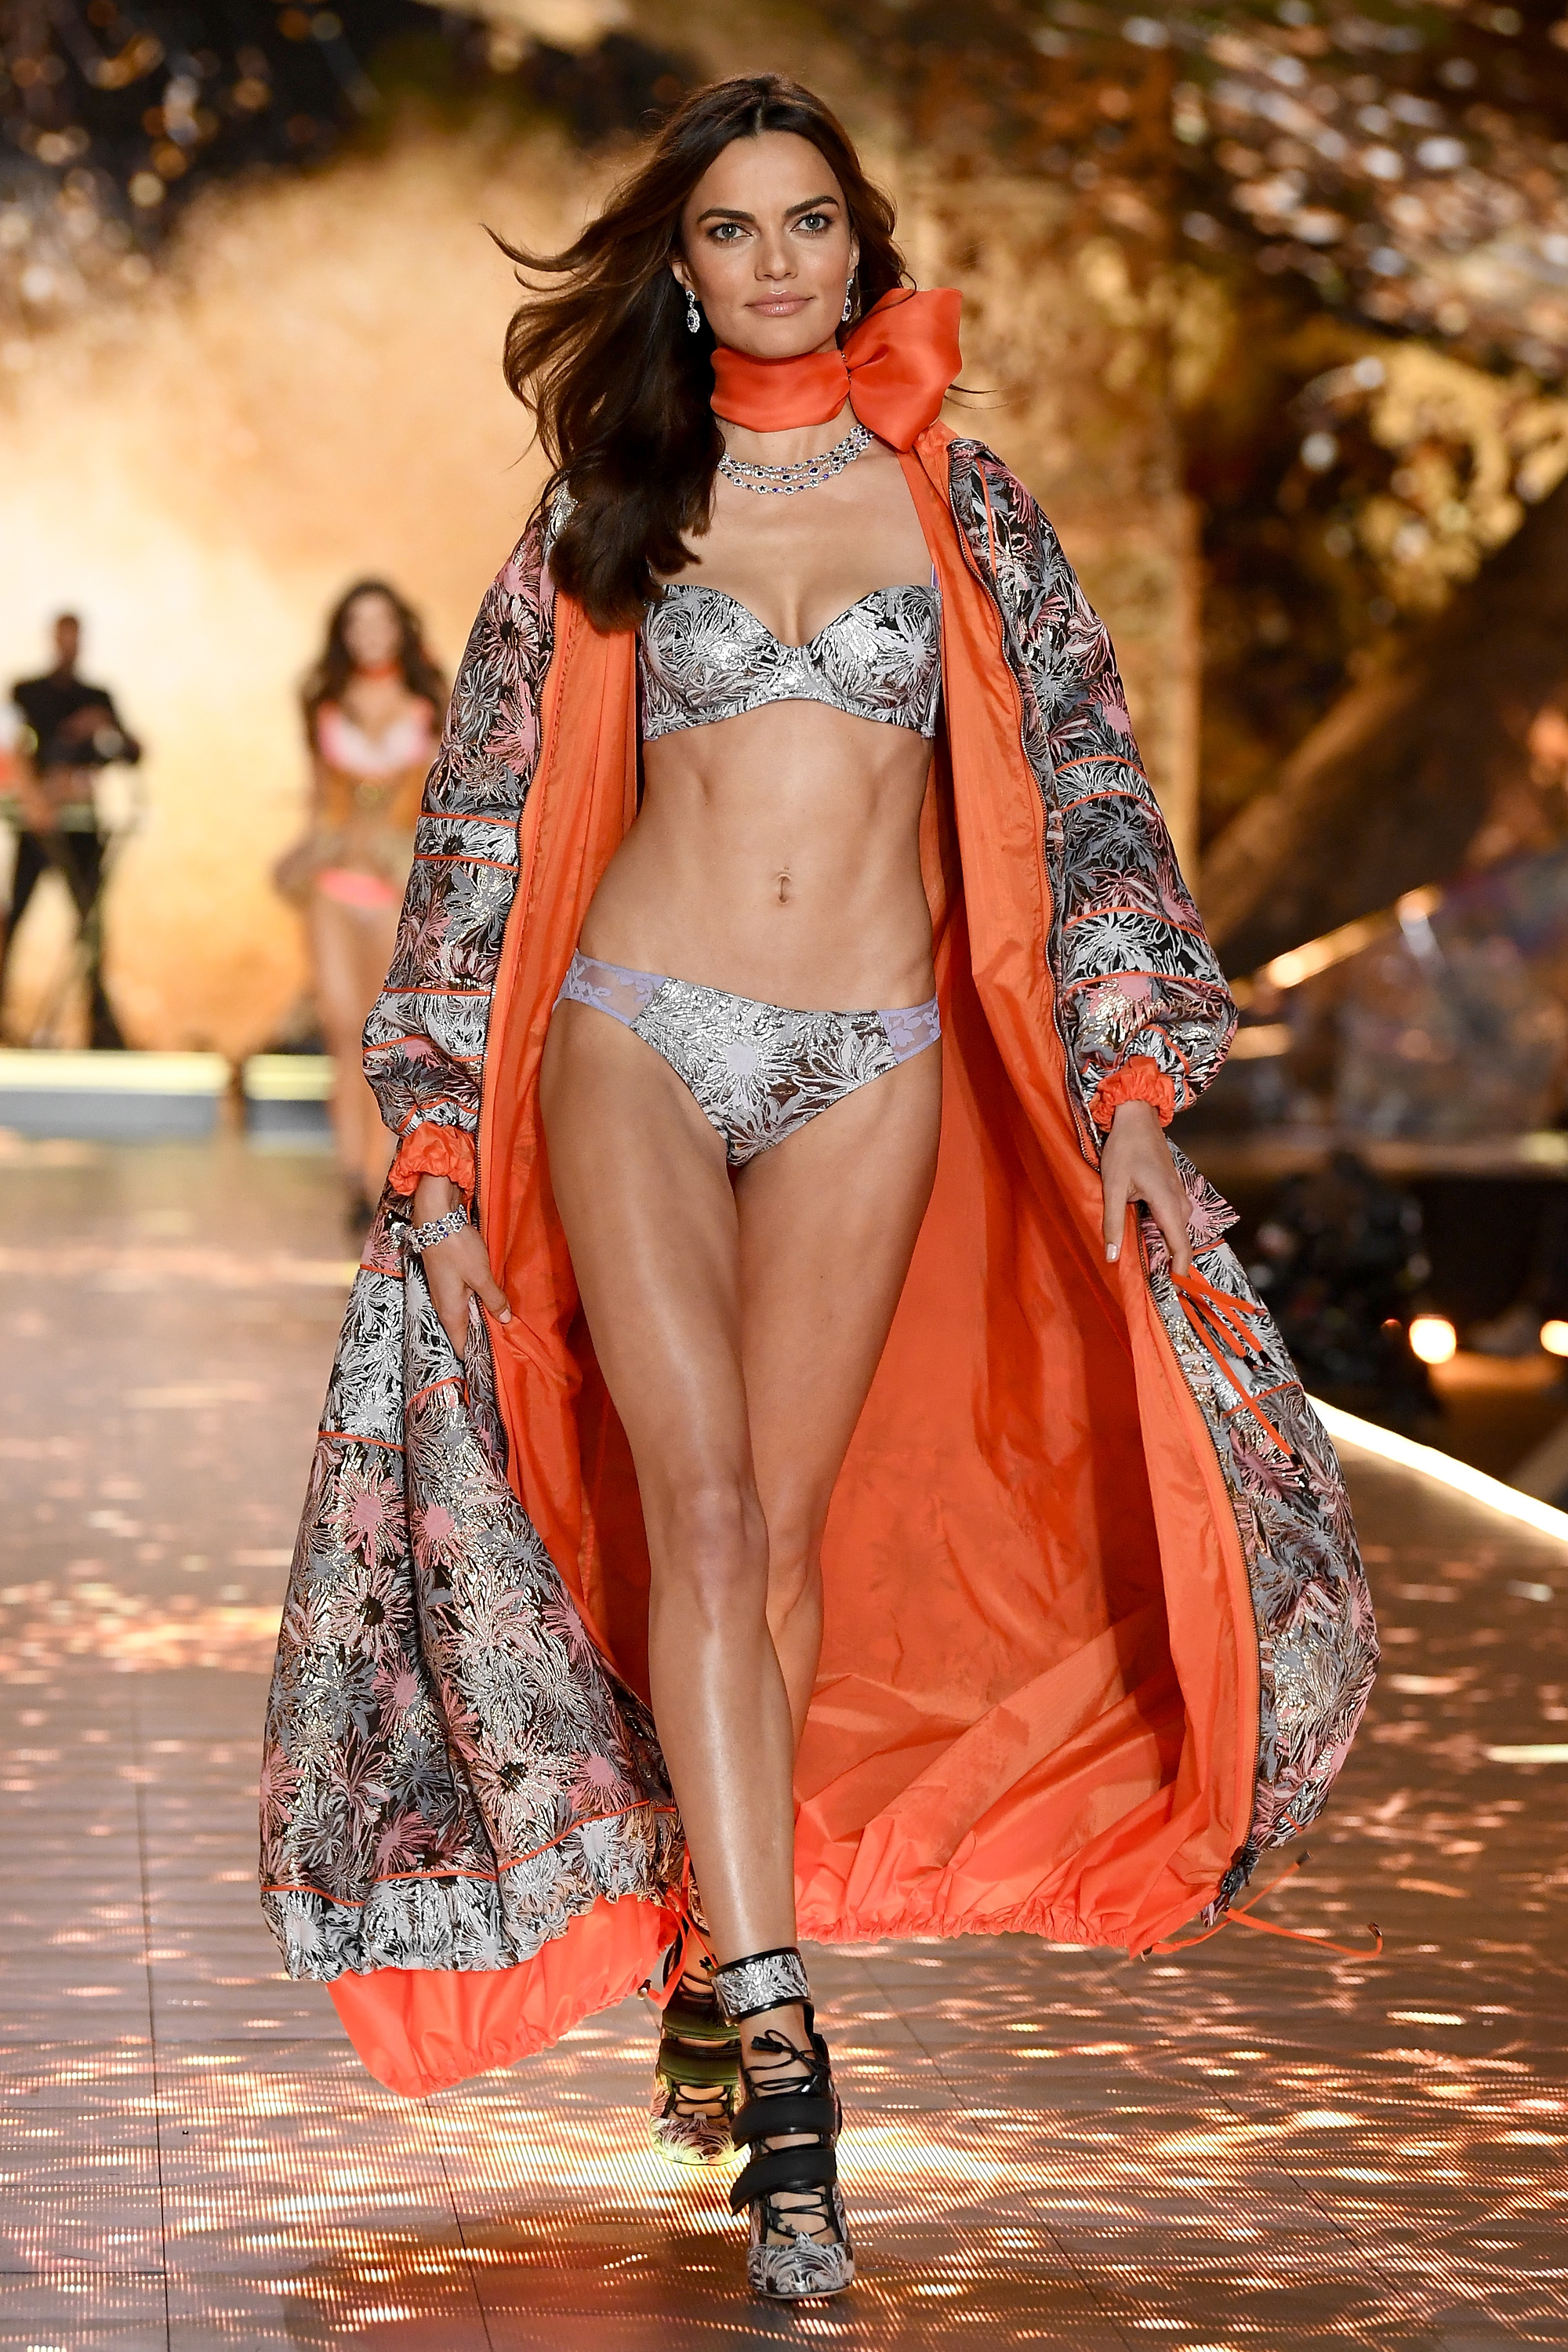 Barbara Fialho walks the runway during the 2018 Victoria's Secret Fashion Show at Pier 94 on November 8, 2018, in New York City. (Getty Images)